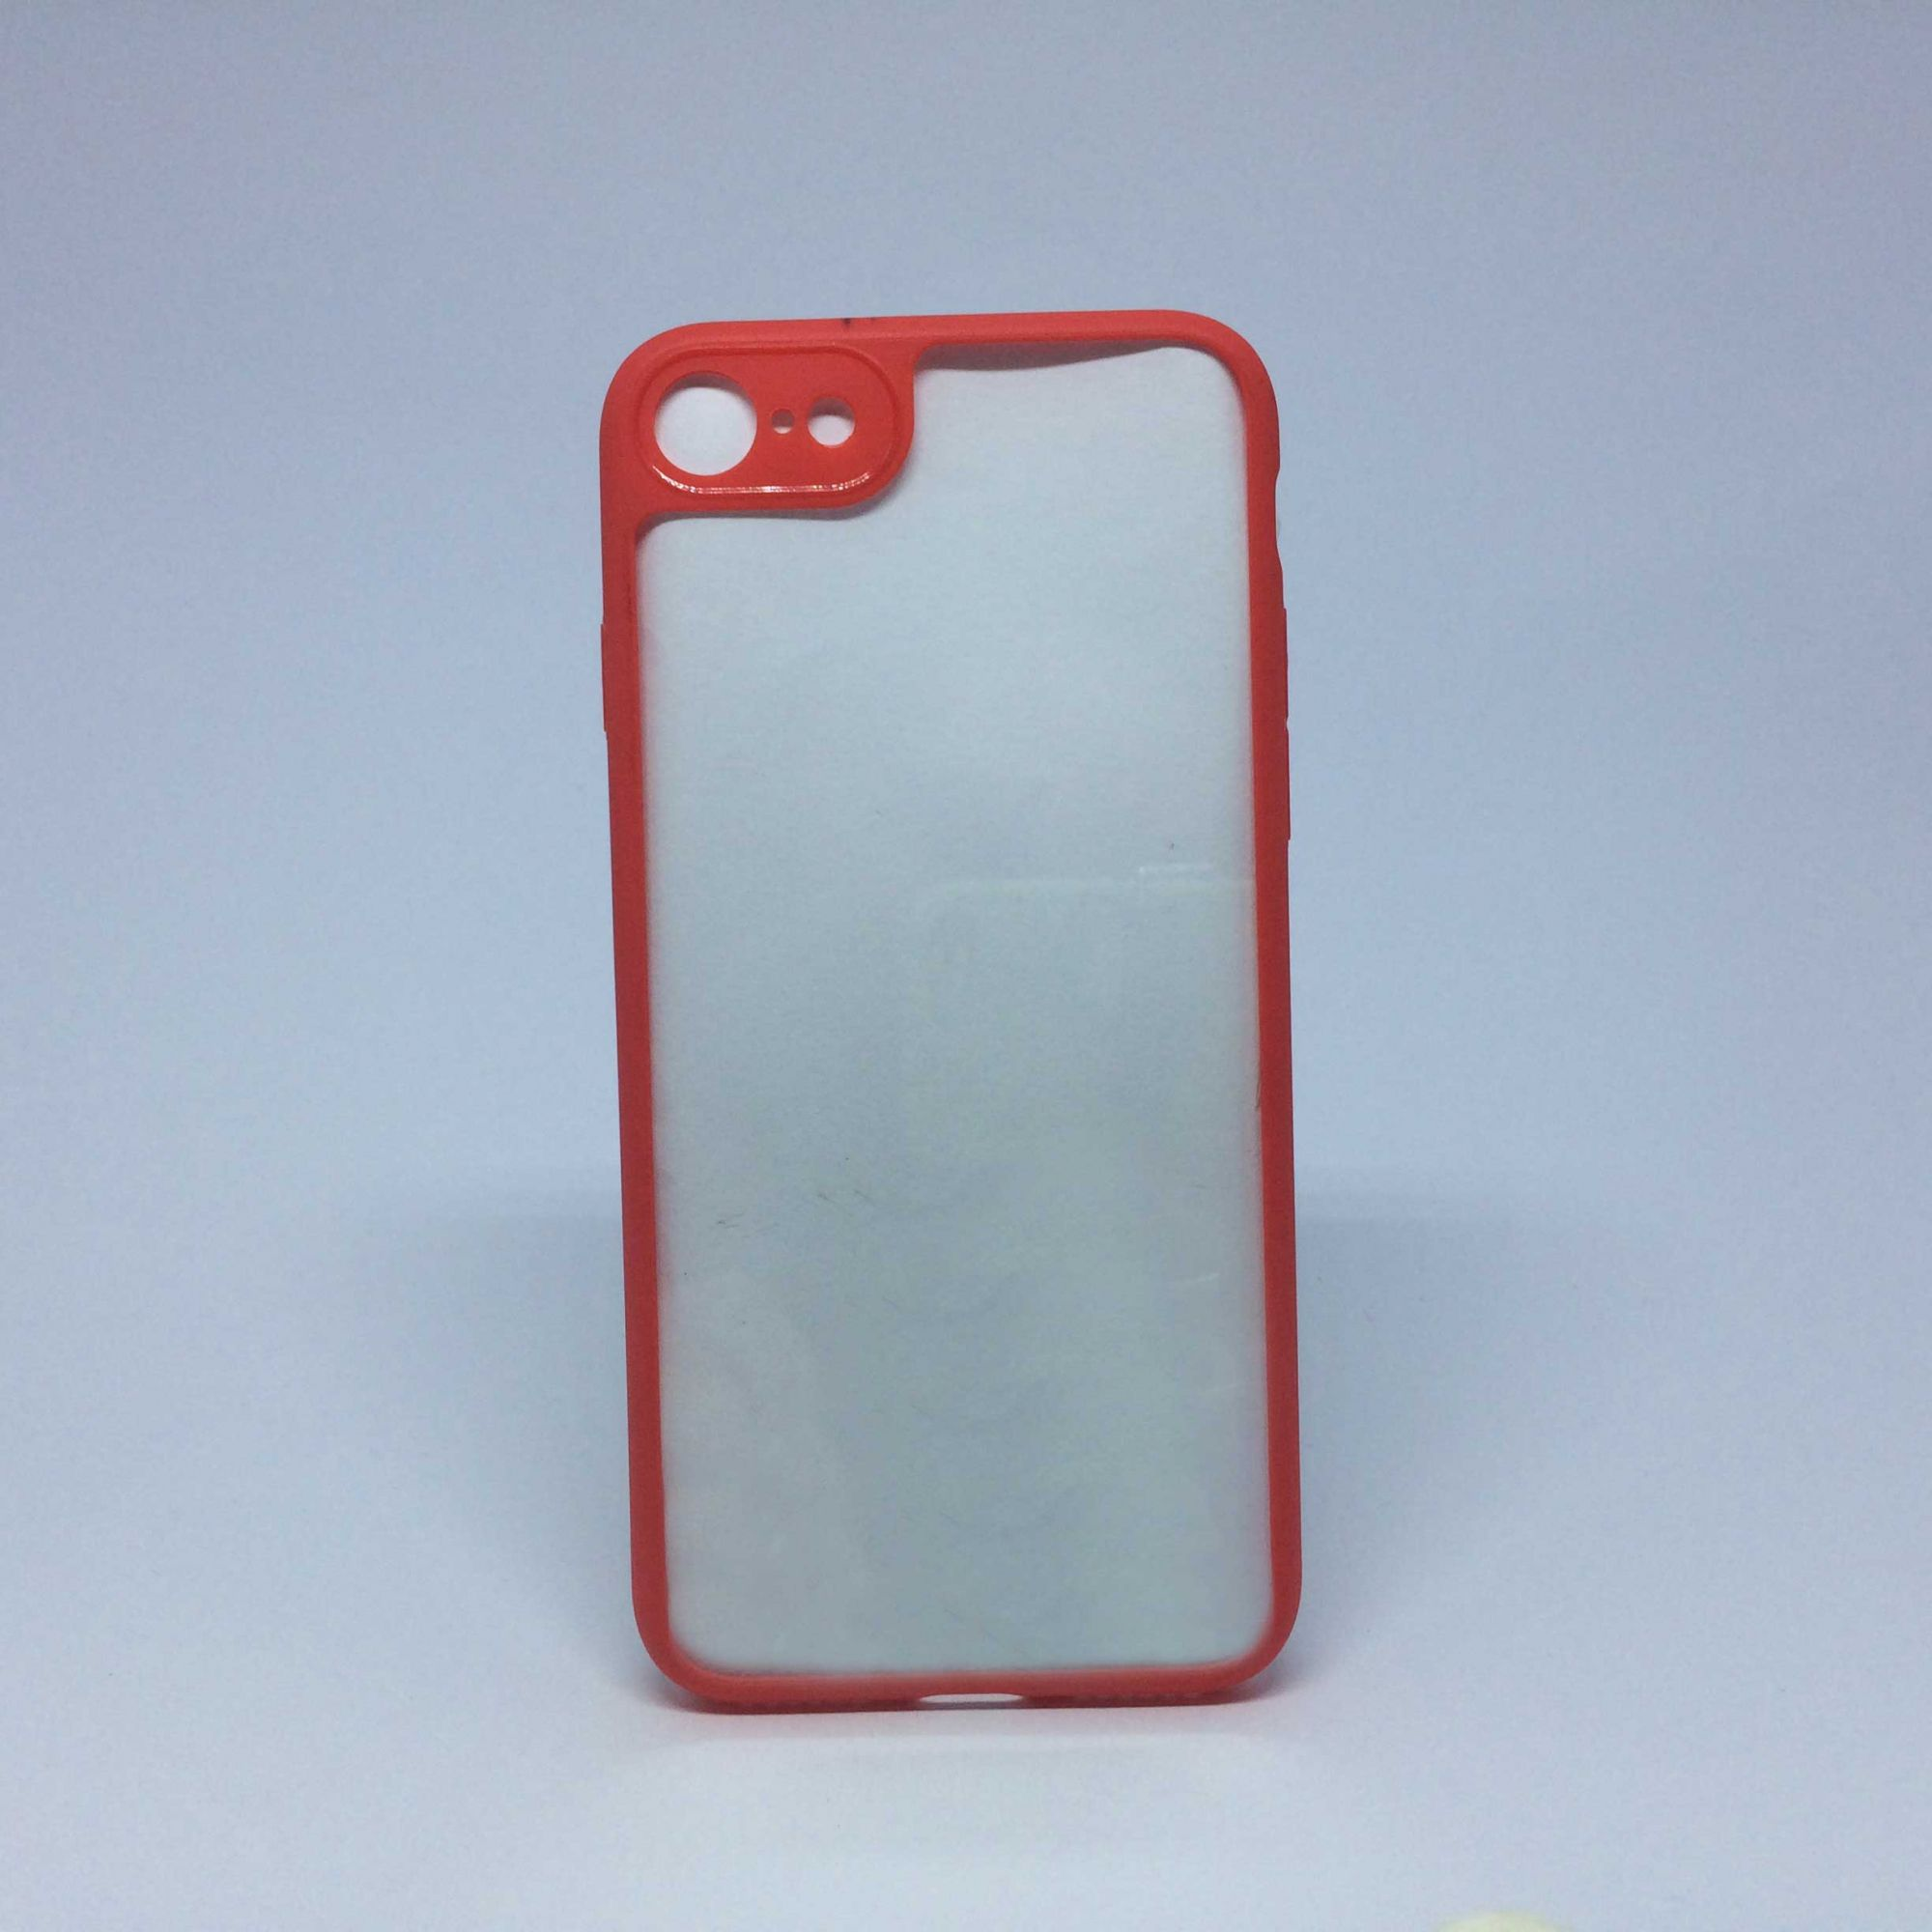 Capa Iphone 5s/SE  Transparente com Borda Colorida